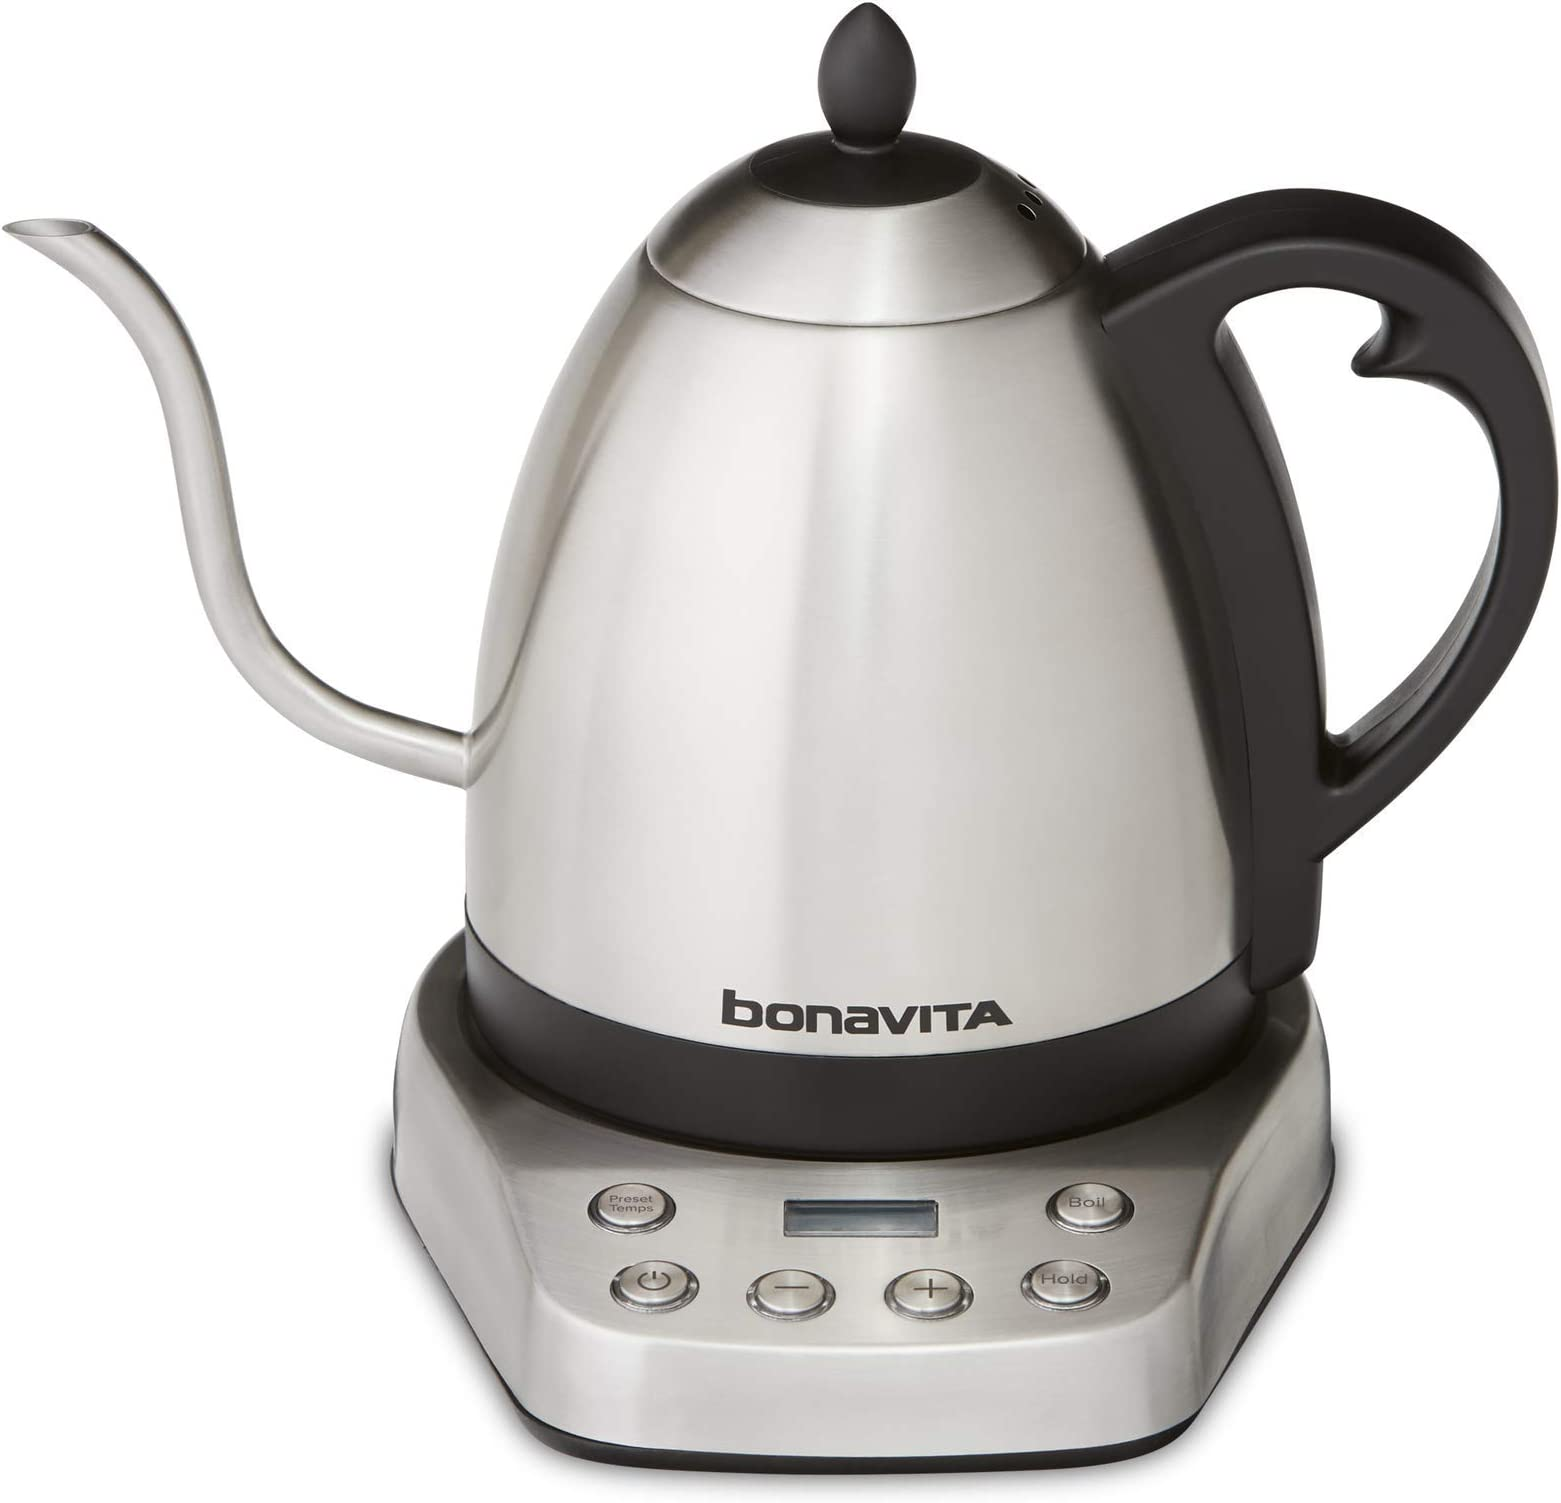 Bonavita BV07002US Interurban 1L Variable Temperature Brushed Stainless Steel Electric Kettle